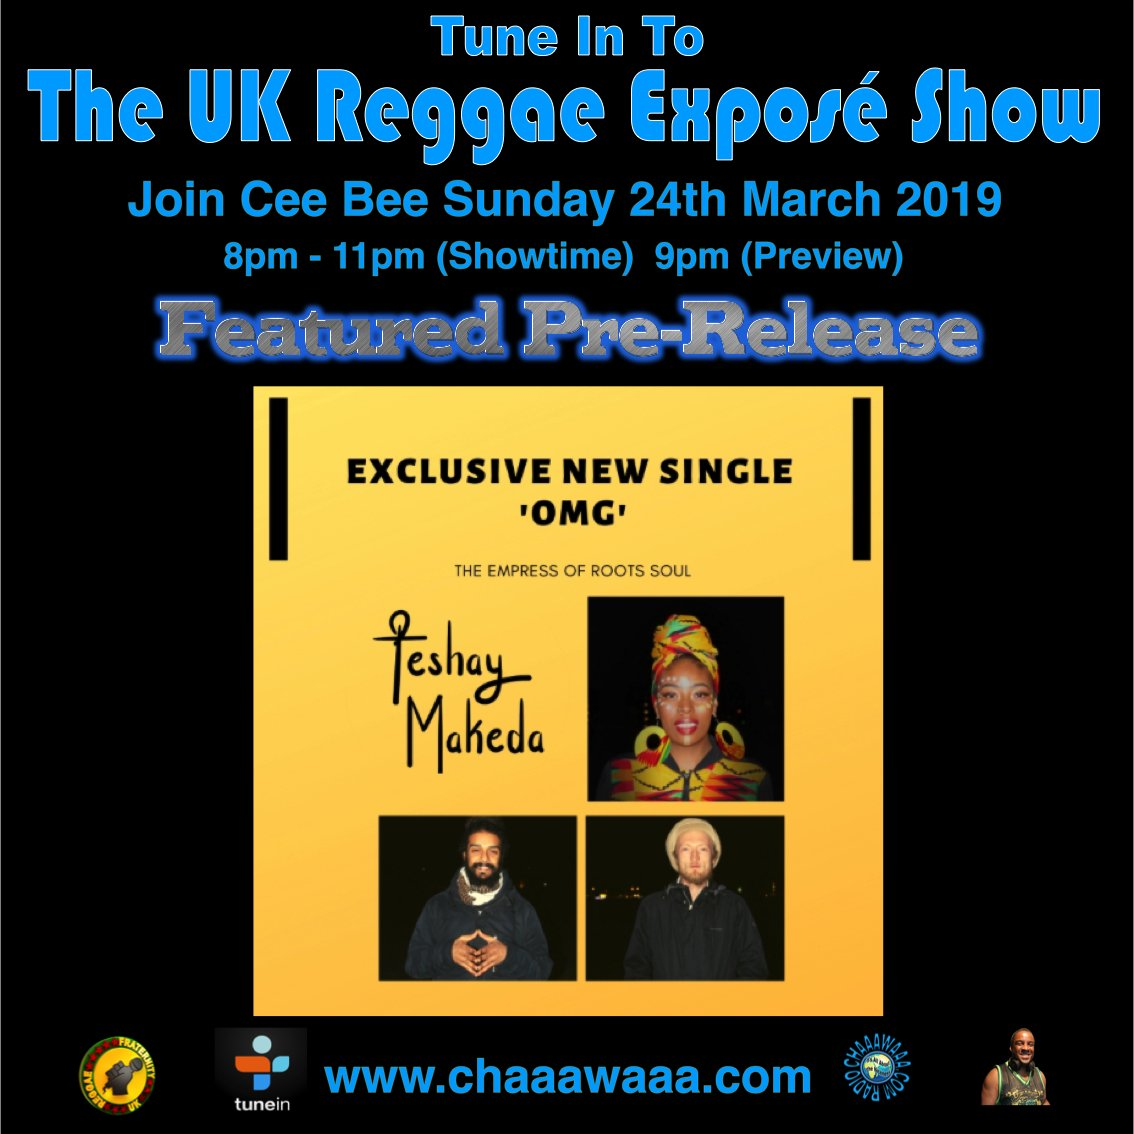 Join me TODAY Sunday 24th March 2019 to hear my featured PRE-RELEASE 'OMG by #TeshayMakeda'. Listen to the 'UK Reggae Exposé Show' on http://www.chaaawaaa.com  8pm to 11pm (UK Time). Preview at 9pm.  @TeshayMakeda #Reggae #Music @studio30records @MICHAELOGORDON